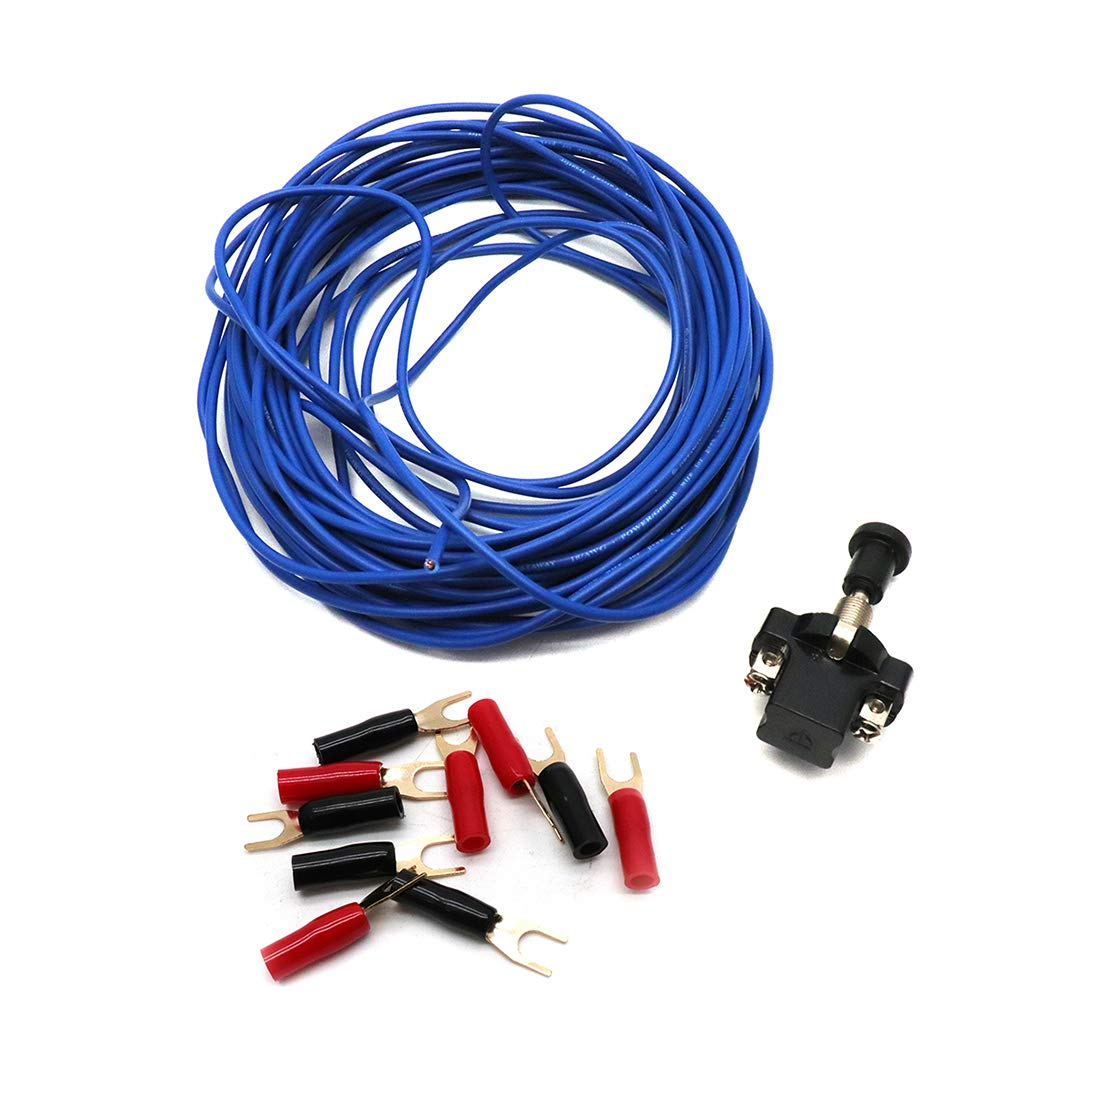 Sydien 18 Gauge 10M//33 Ft Car Audio Home Remote Wire for Amplifier with Connection Terminals /& Push-Pull Switch